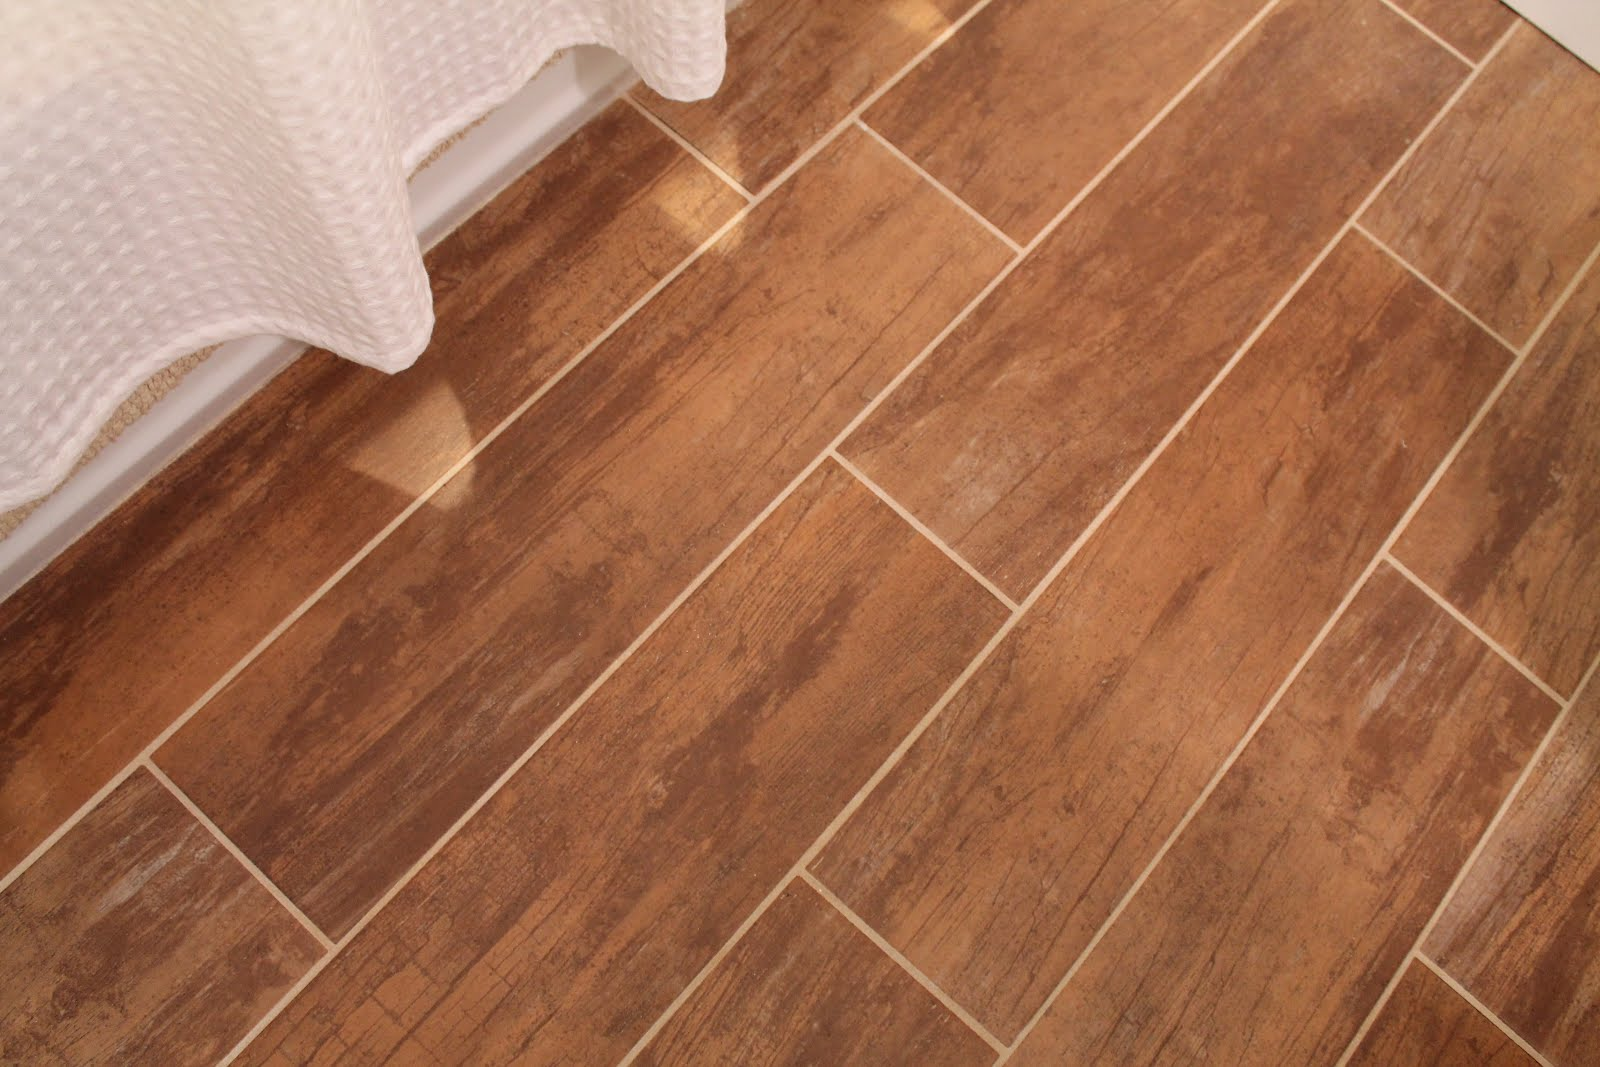 Bathroom renovation with wood grain tile and more for Wooden floor tiles